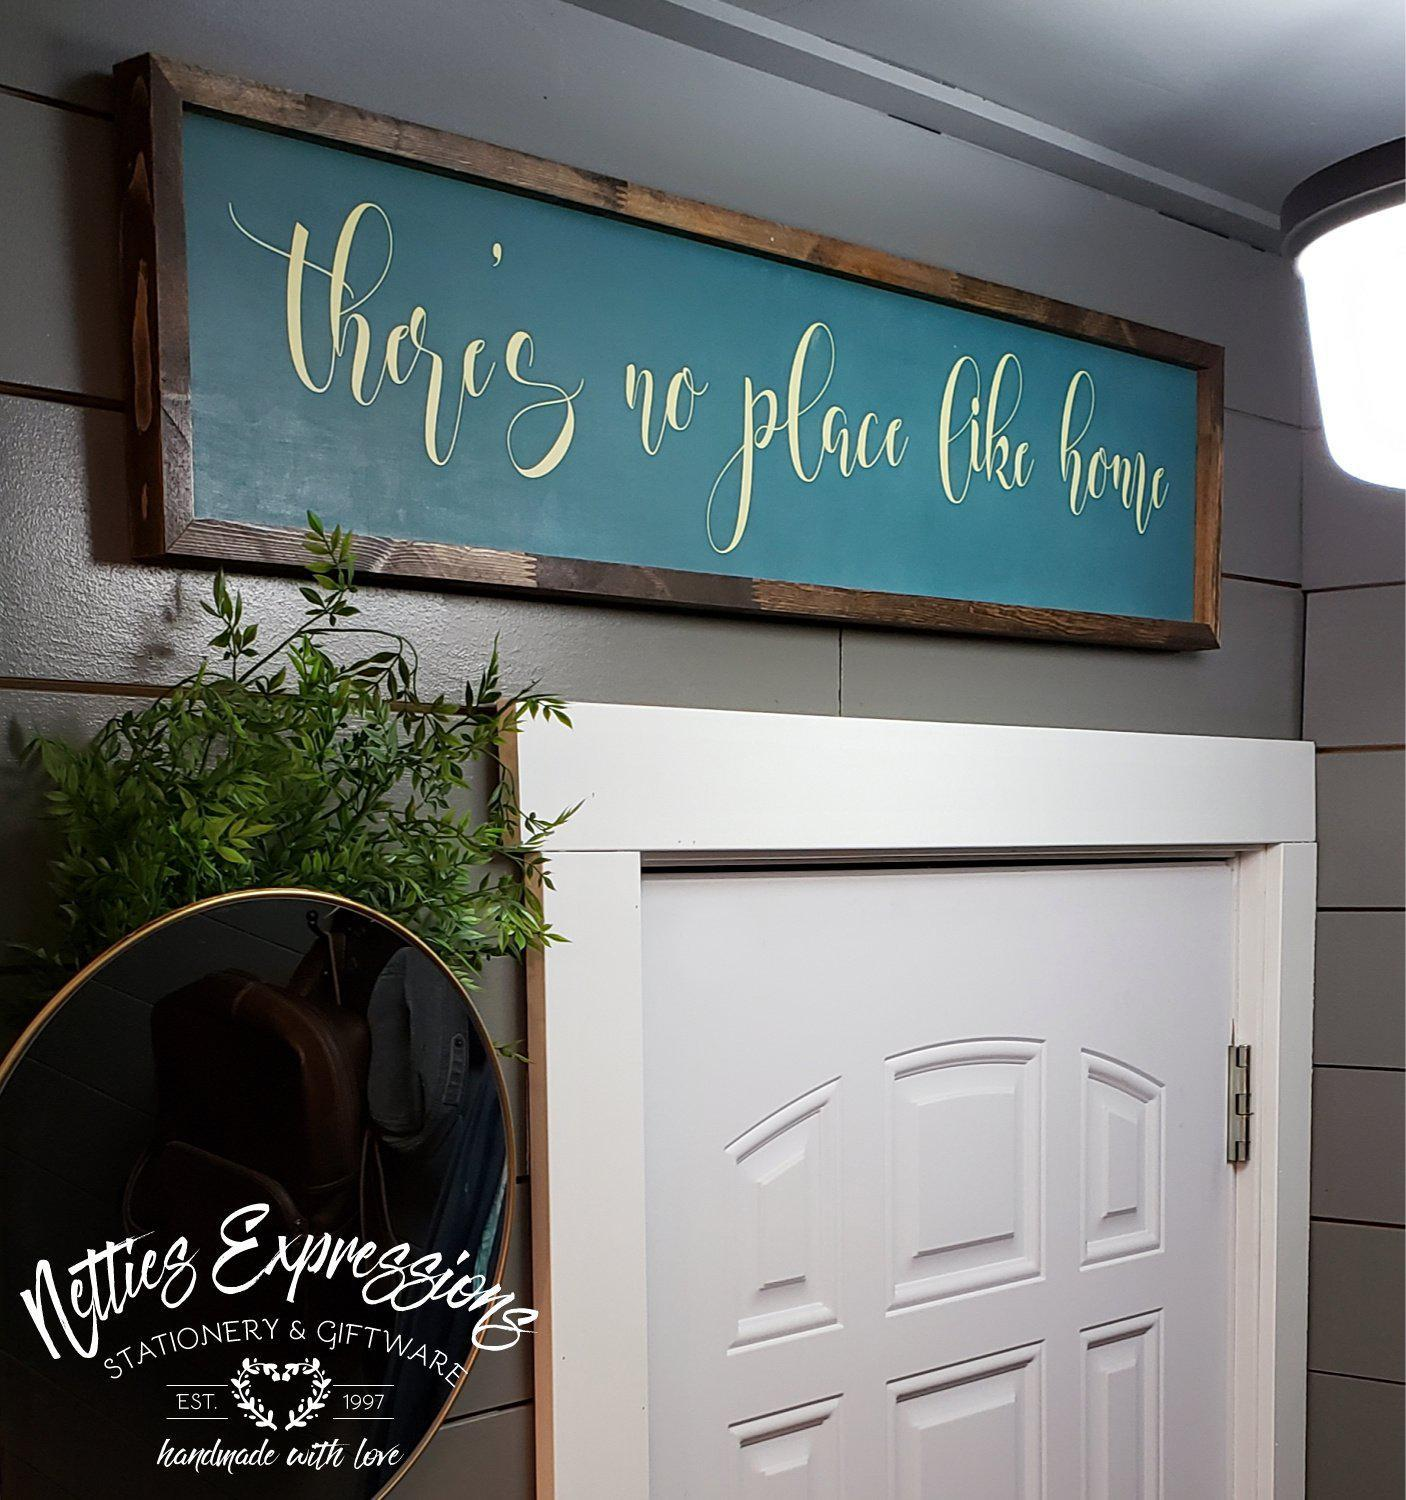 There's no place like home - Rustic Wood Sign - Netties Expressions